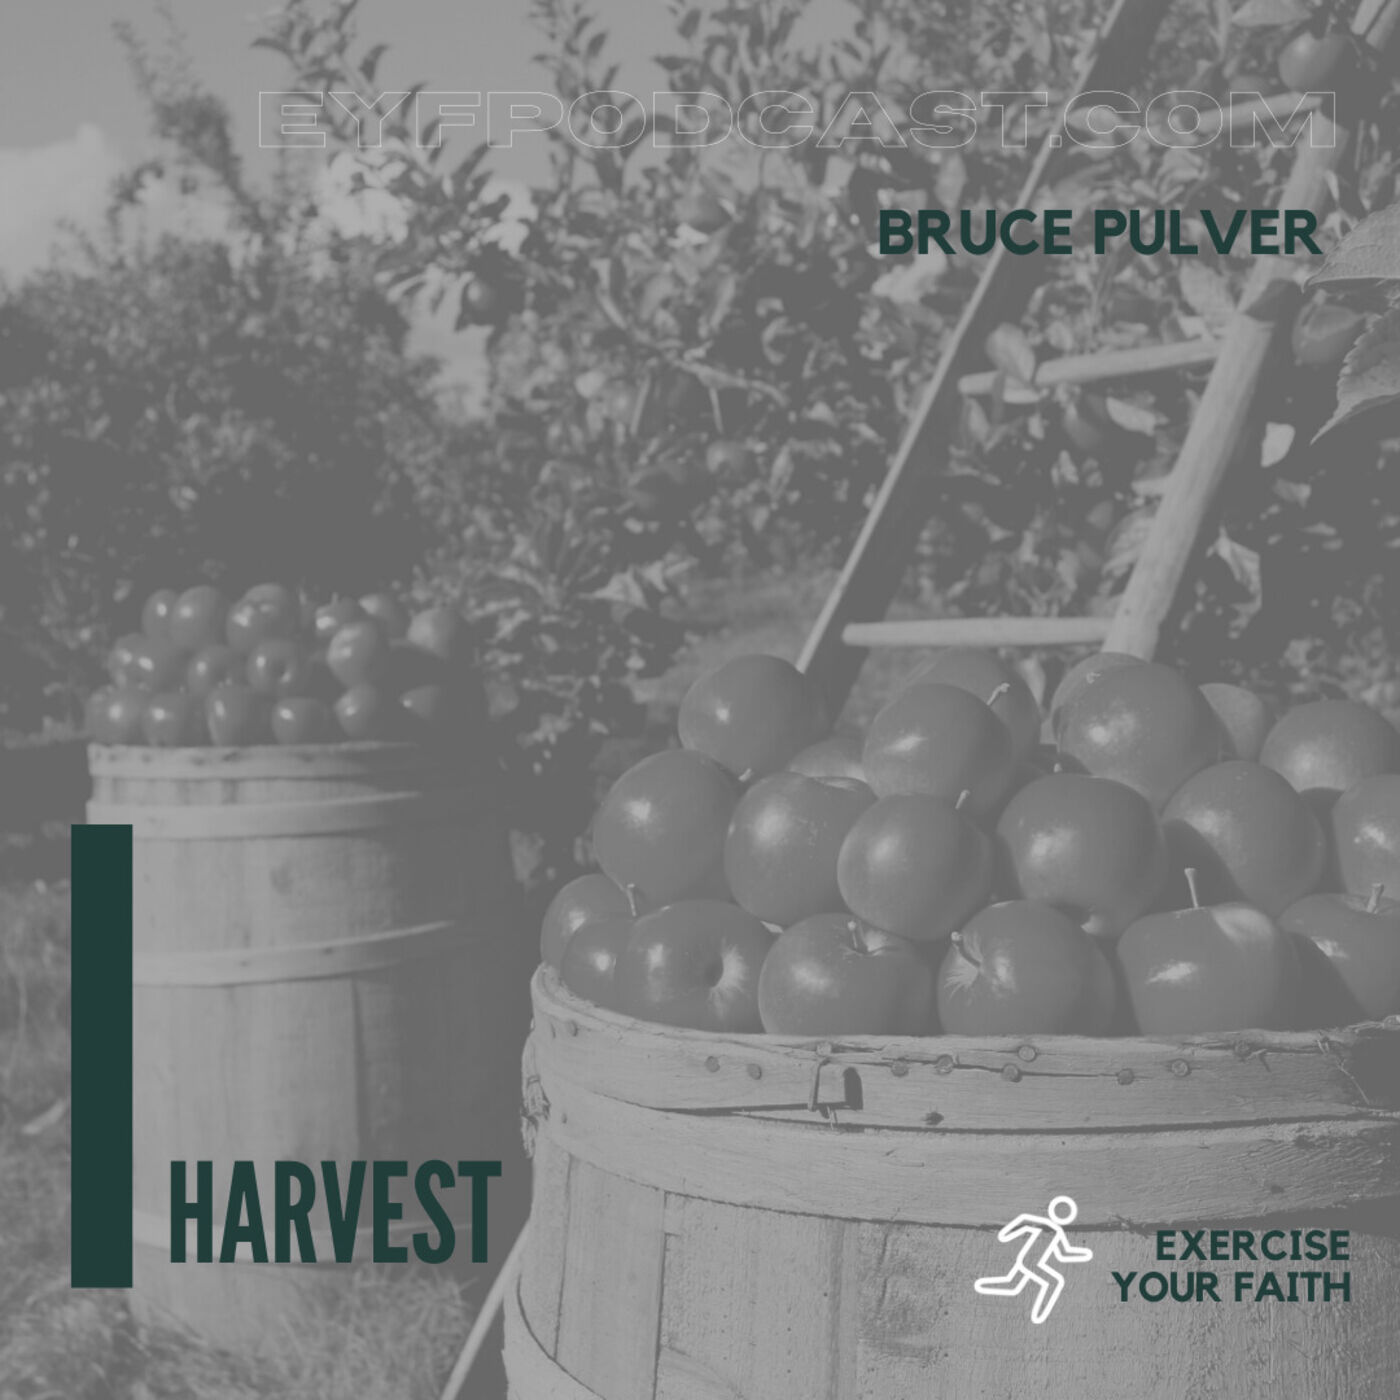 EYFPodcast- Exercise Your Faith by Praising God for the Harvest with Bruce Pulver